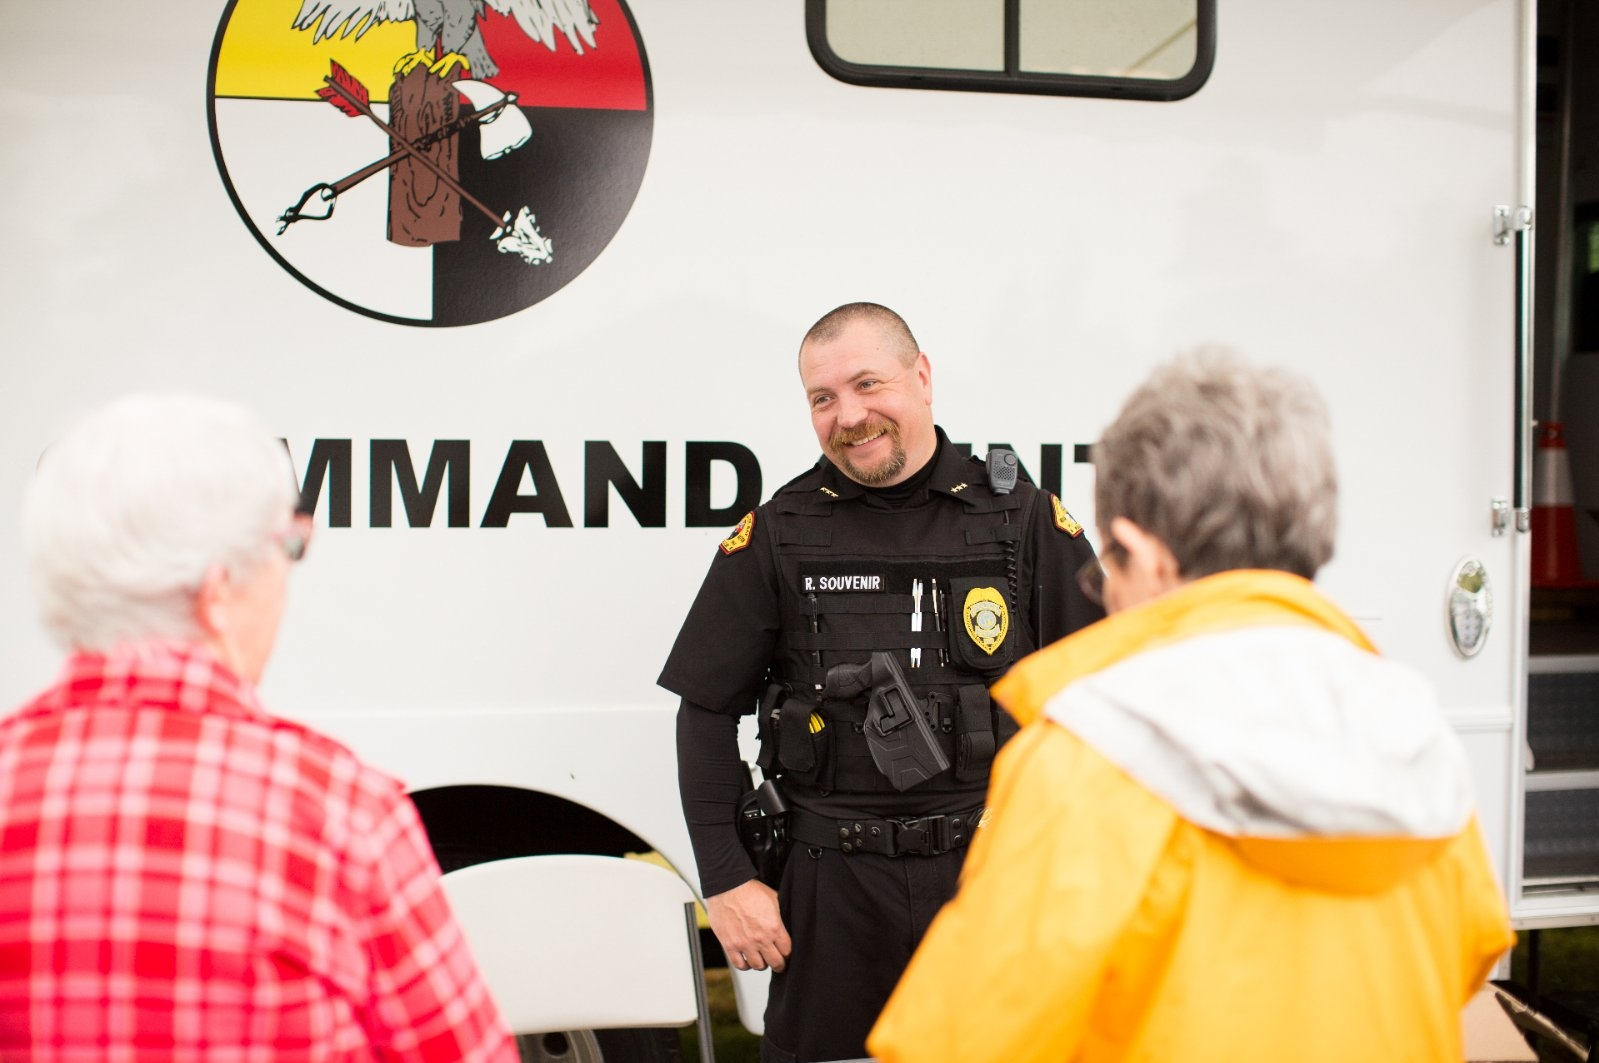 An officer educates the community.